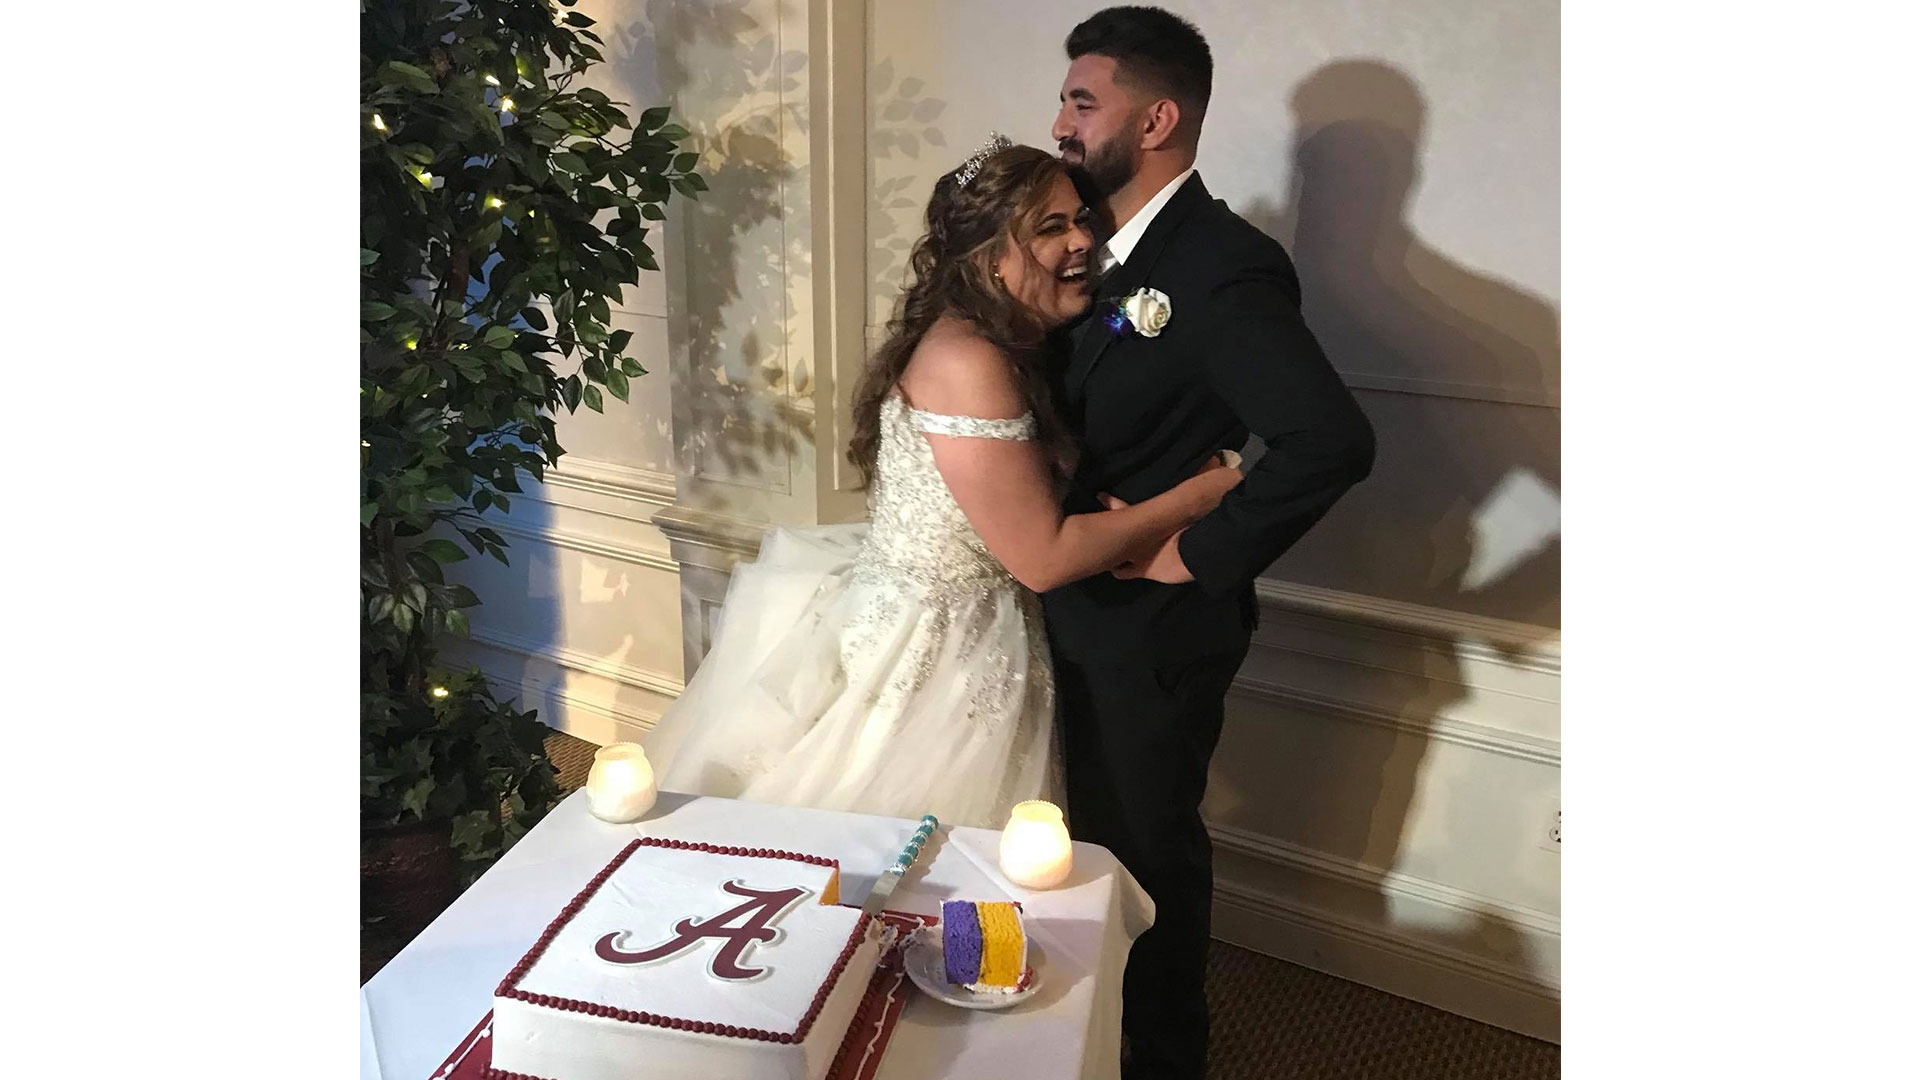 Louisiana Groom's Cake Sabotage